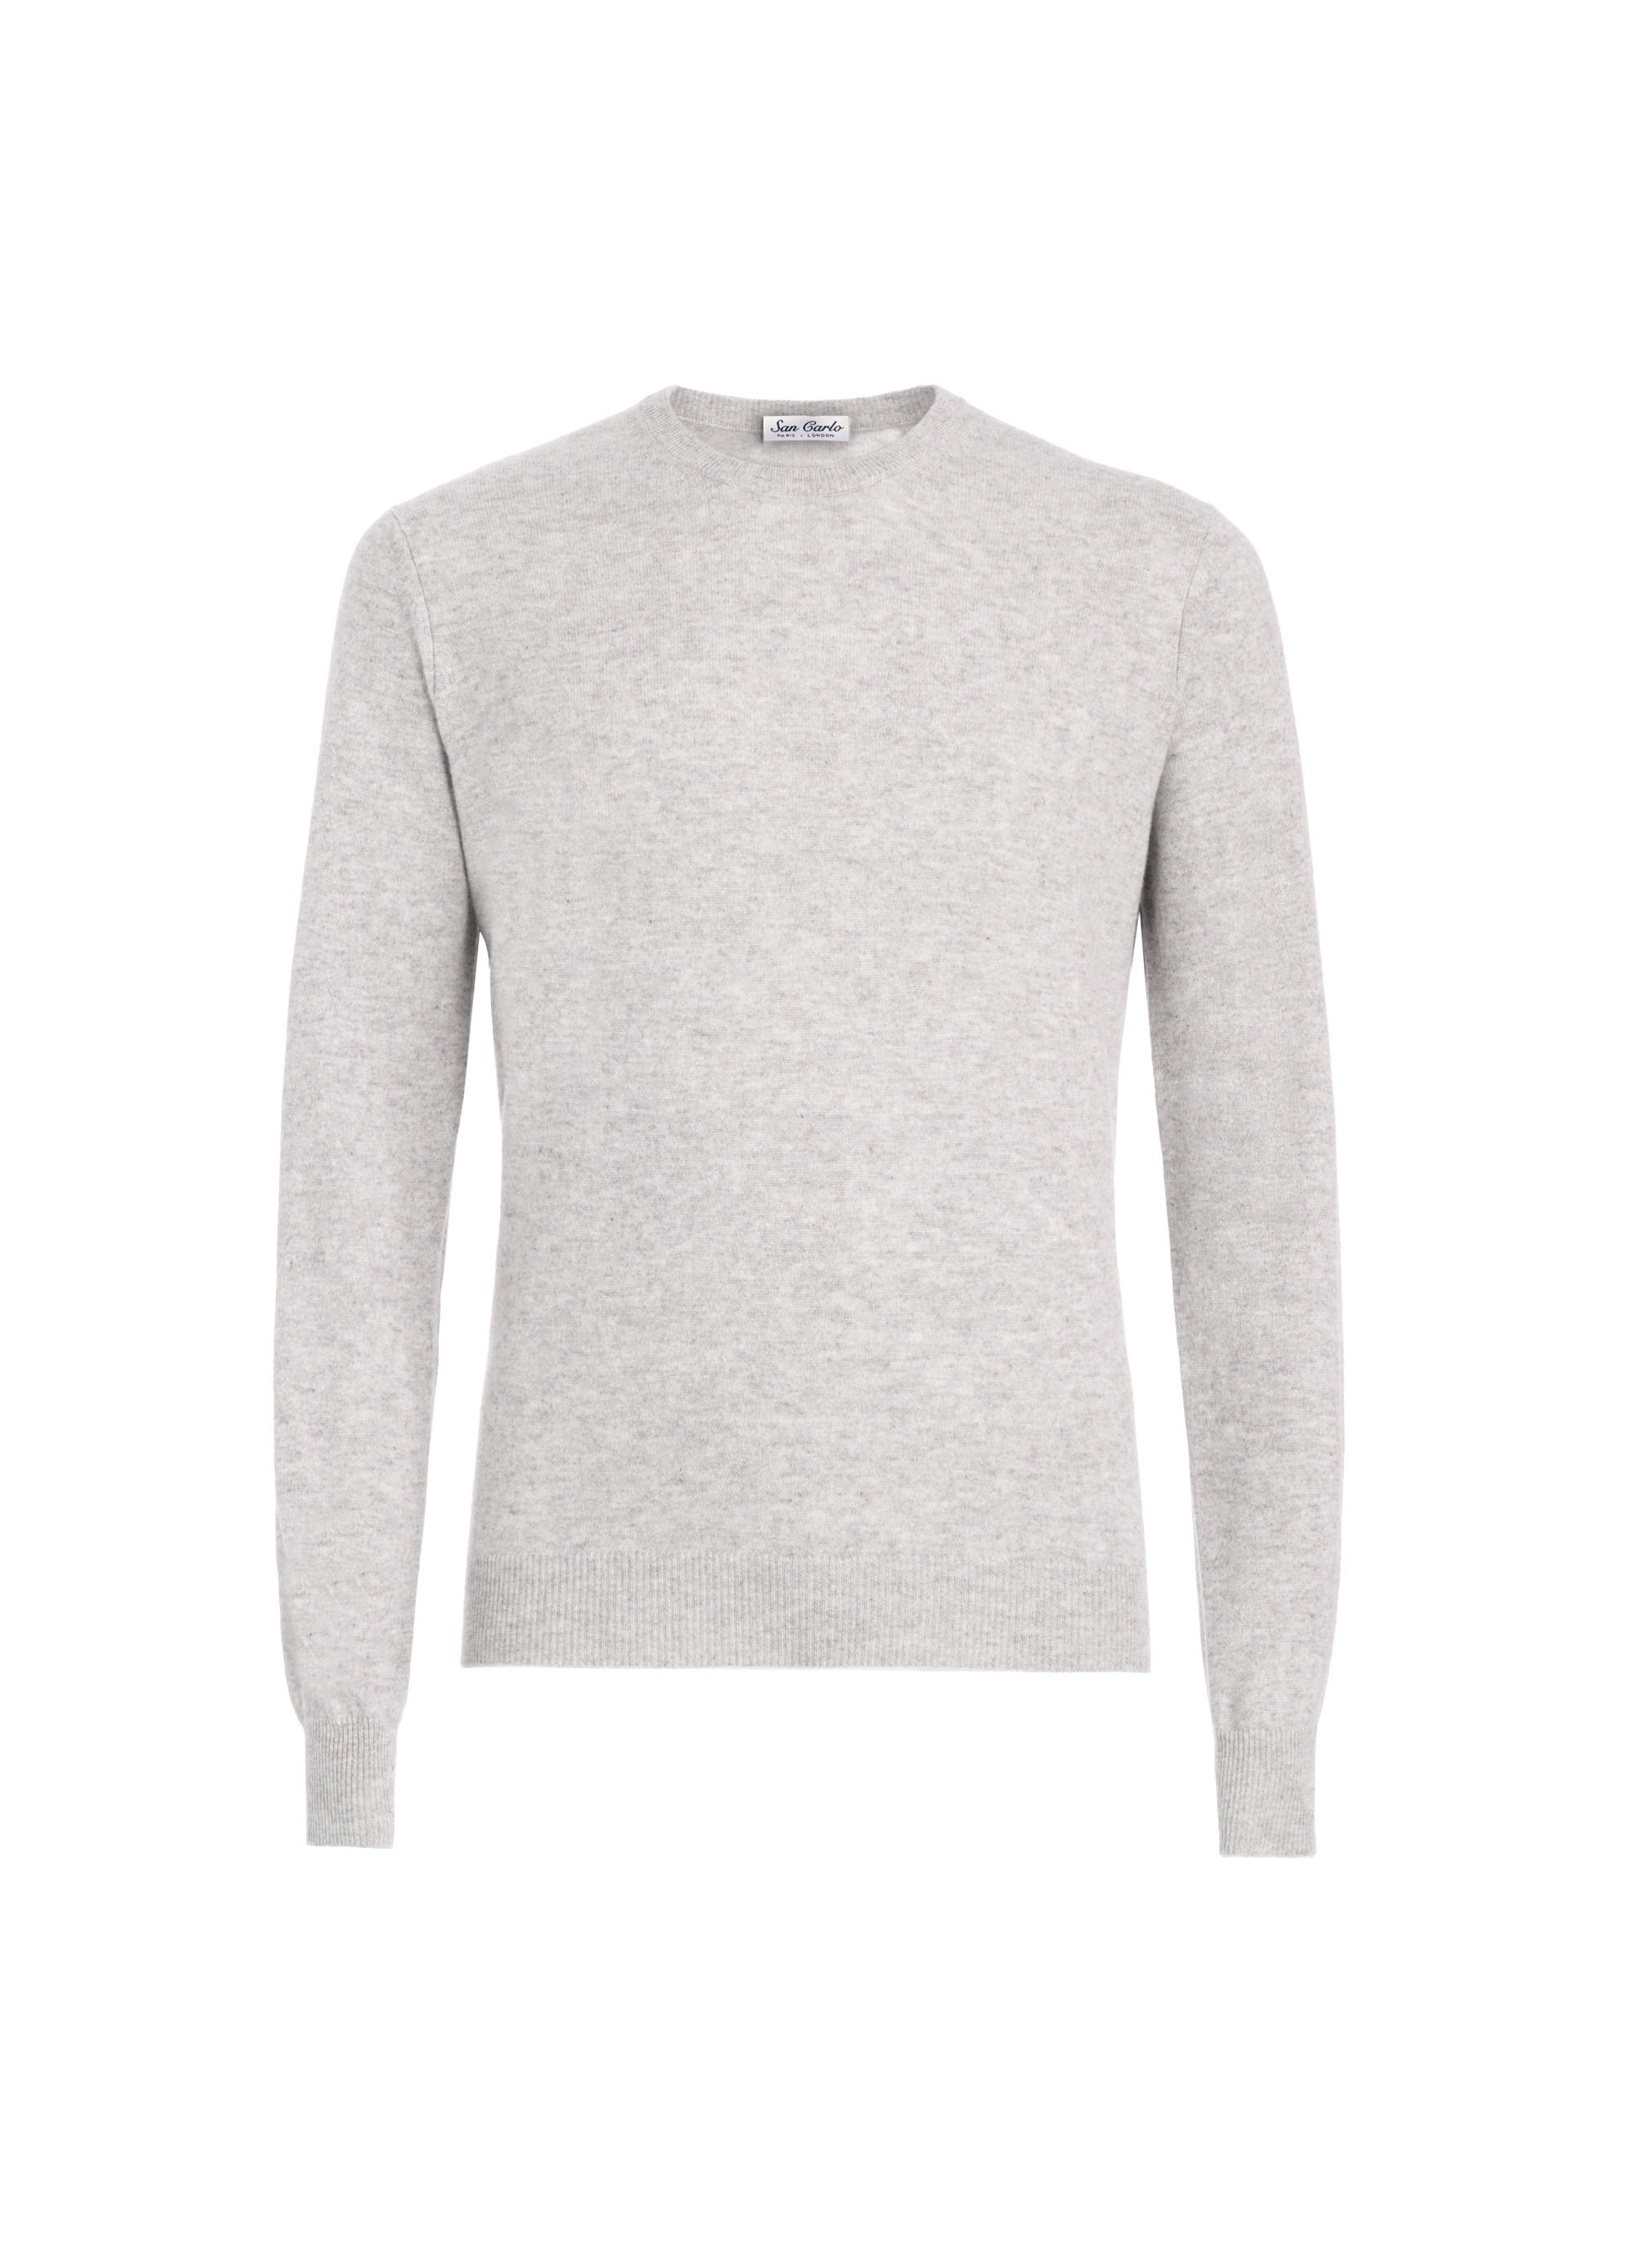 Round Neck Cashmere light grey 02